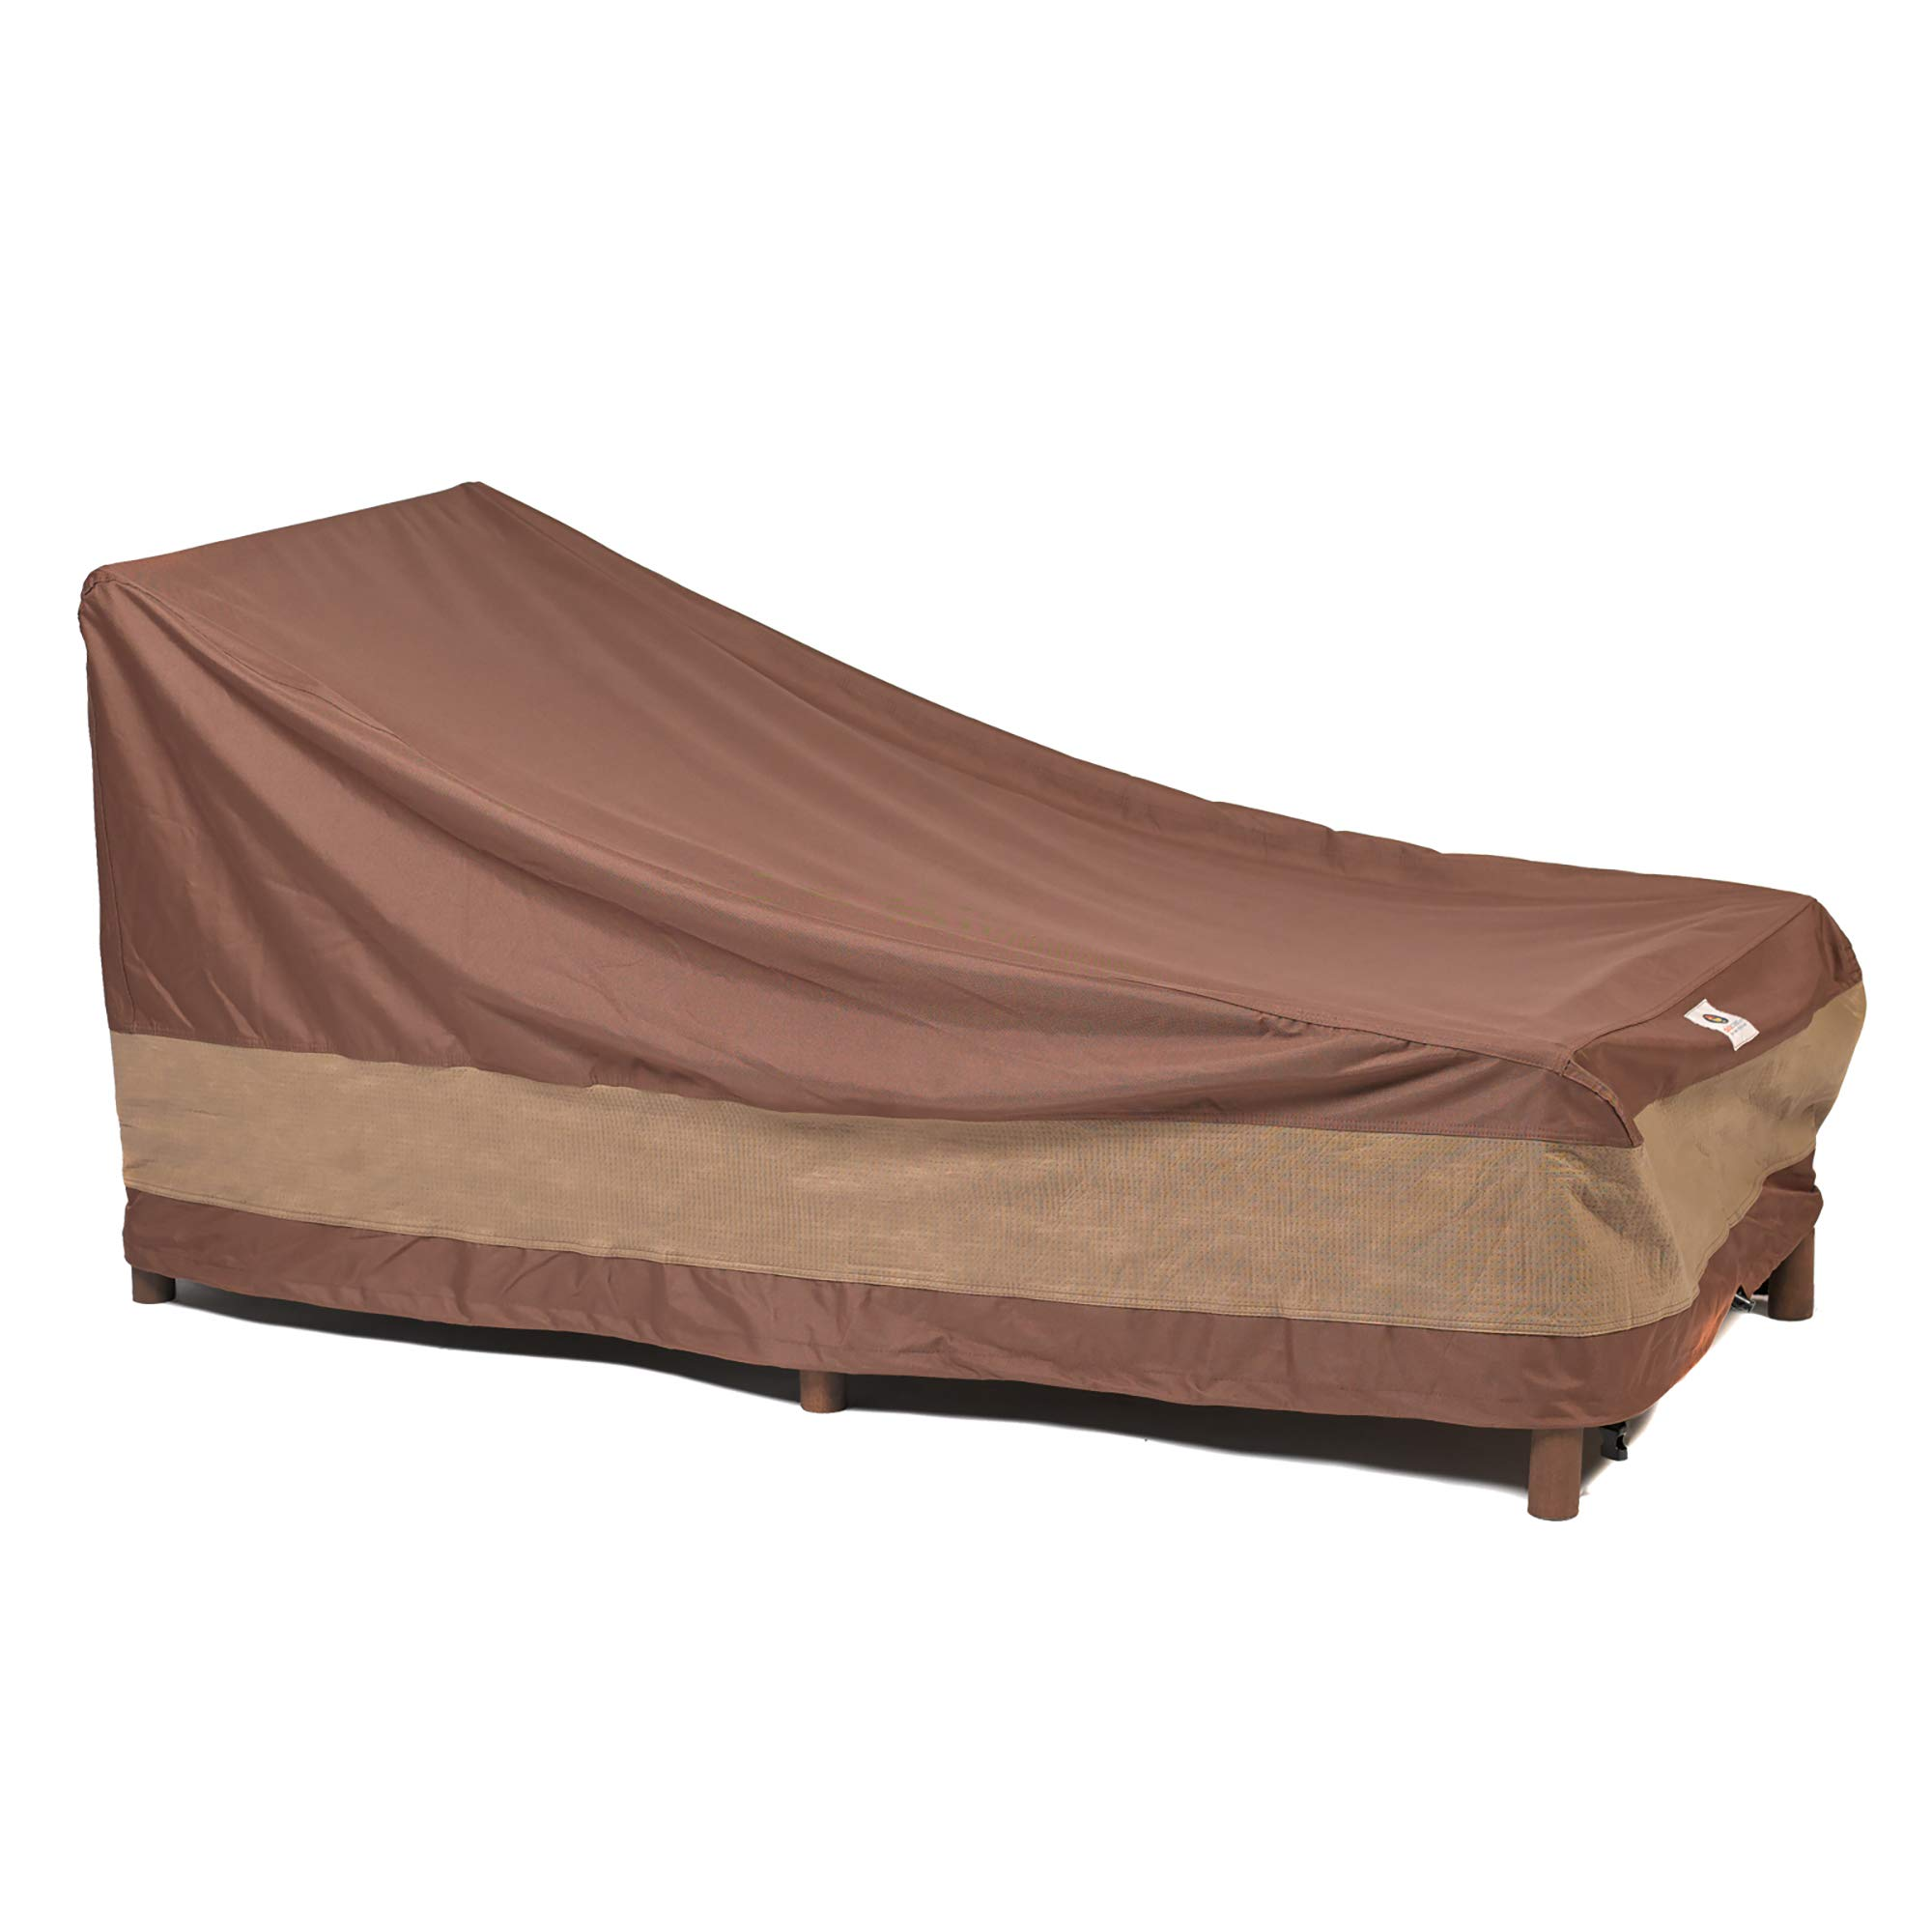 Duck Covers Ultimate Patio Chaise Lounge Cover, Fits Outdoor Patio Chaise Lounge Chairs 80'' Long